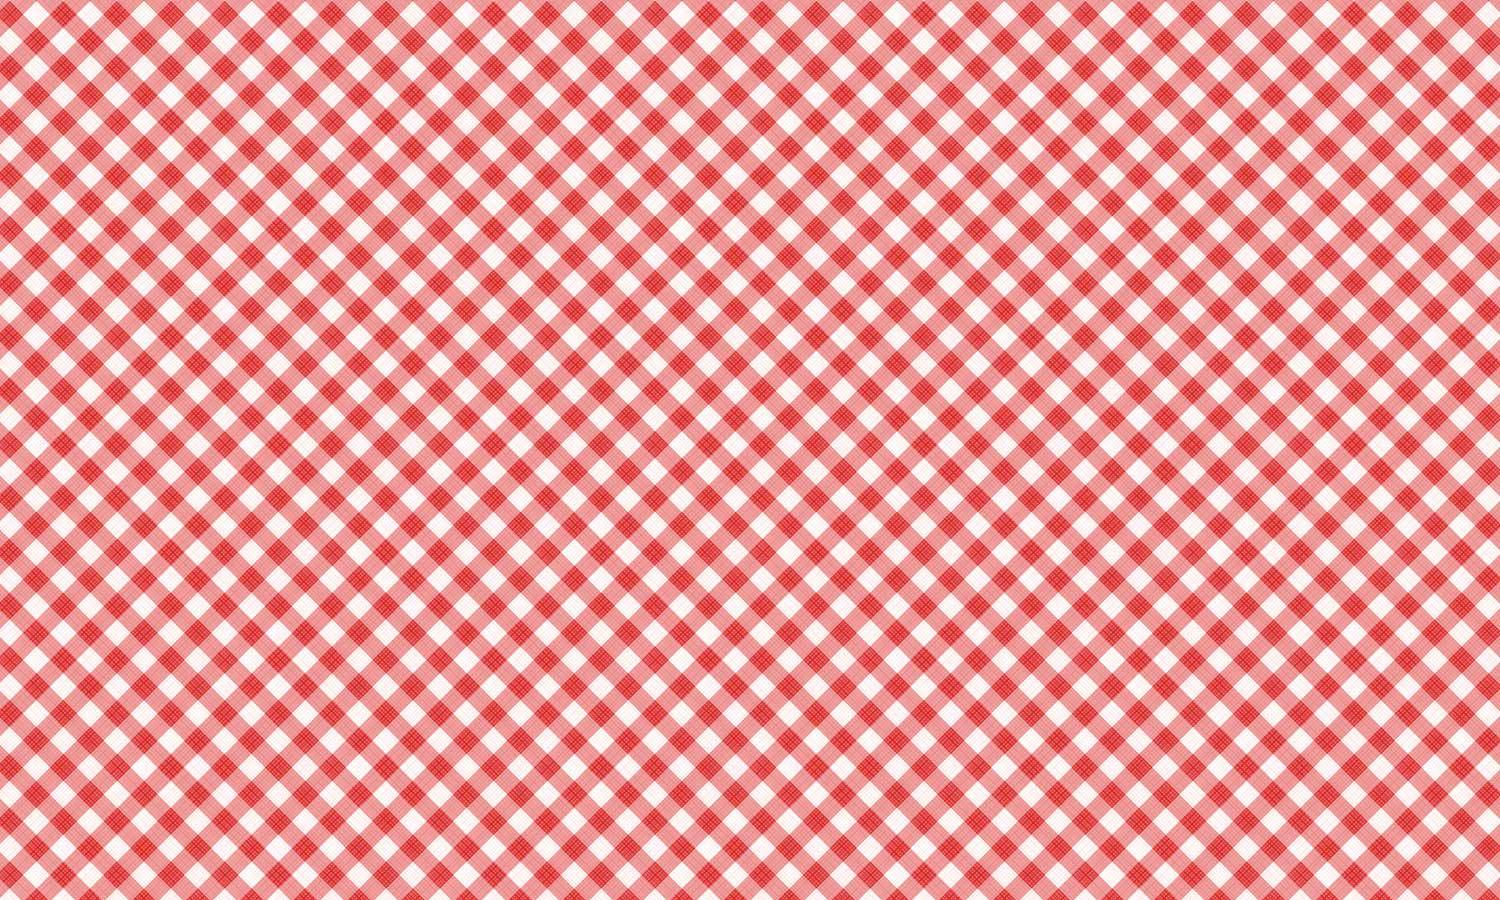 self-adhesive film for furniture - checkered-Rot  PAT092